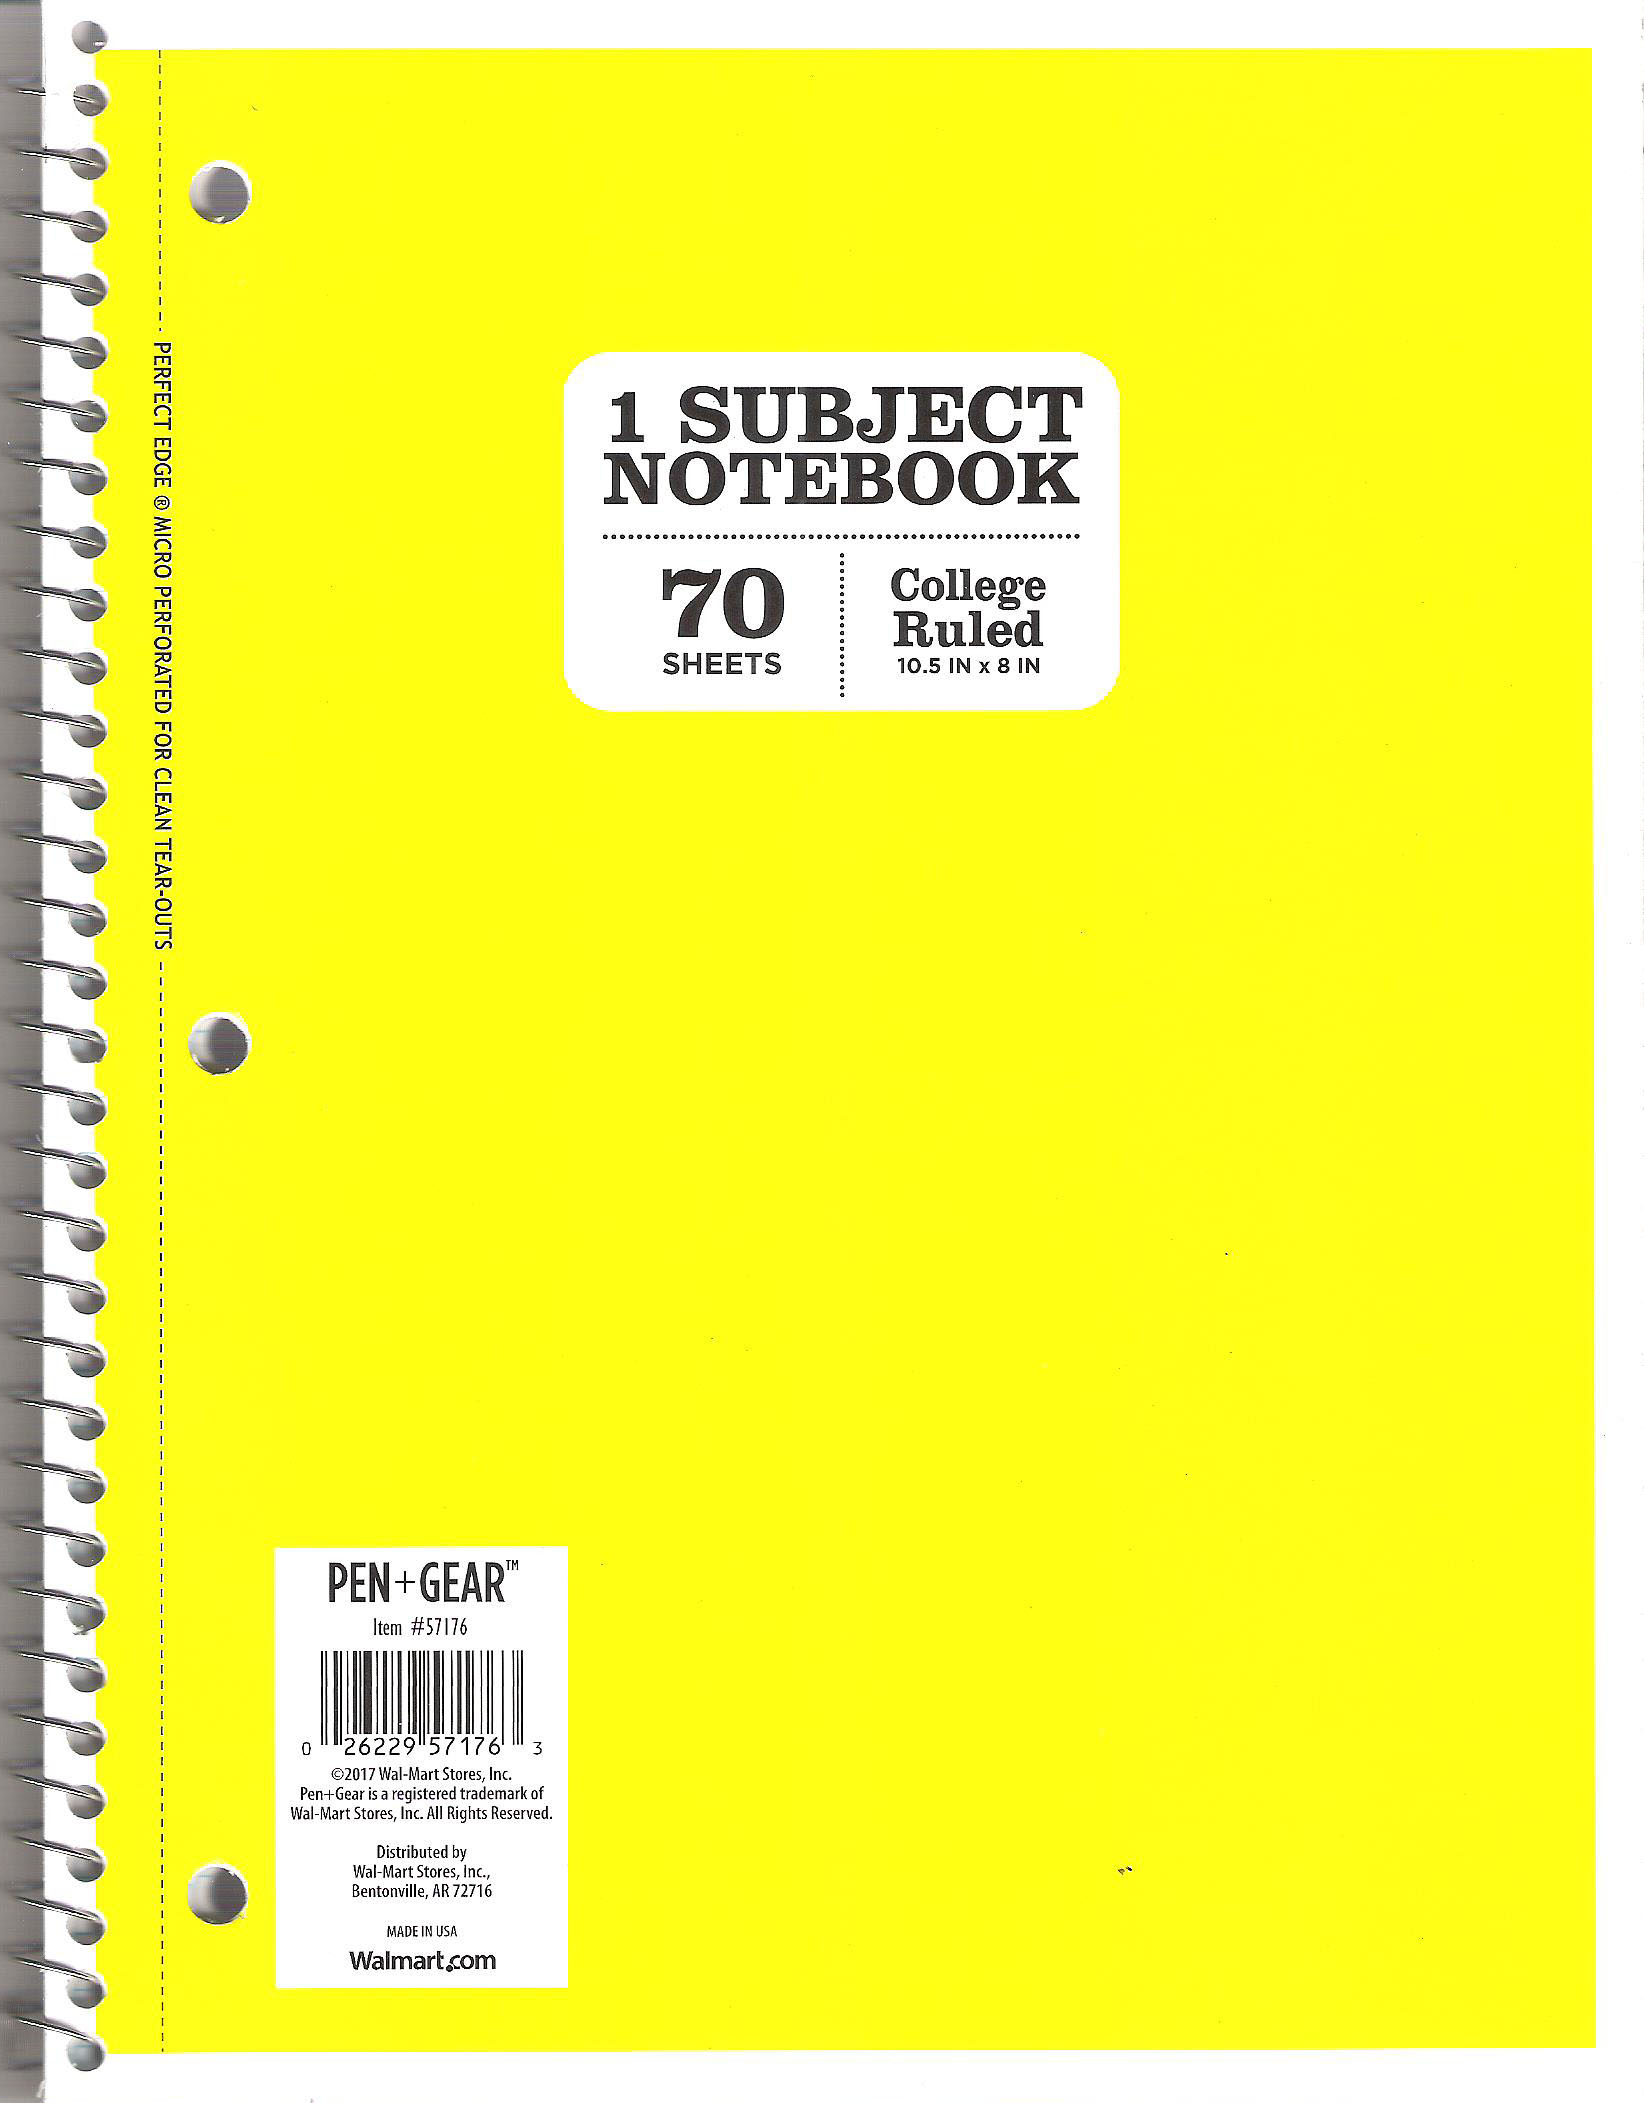 The Yellow Notebook